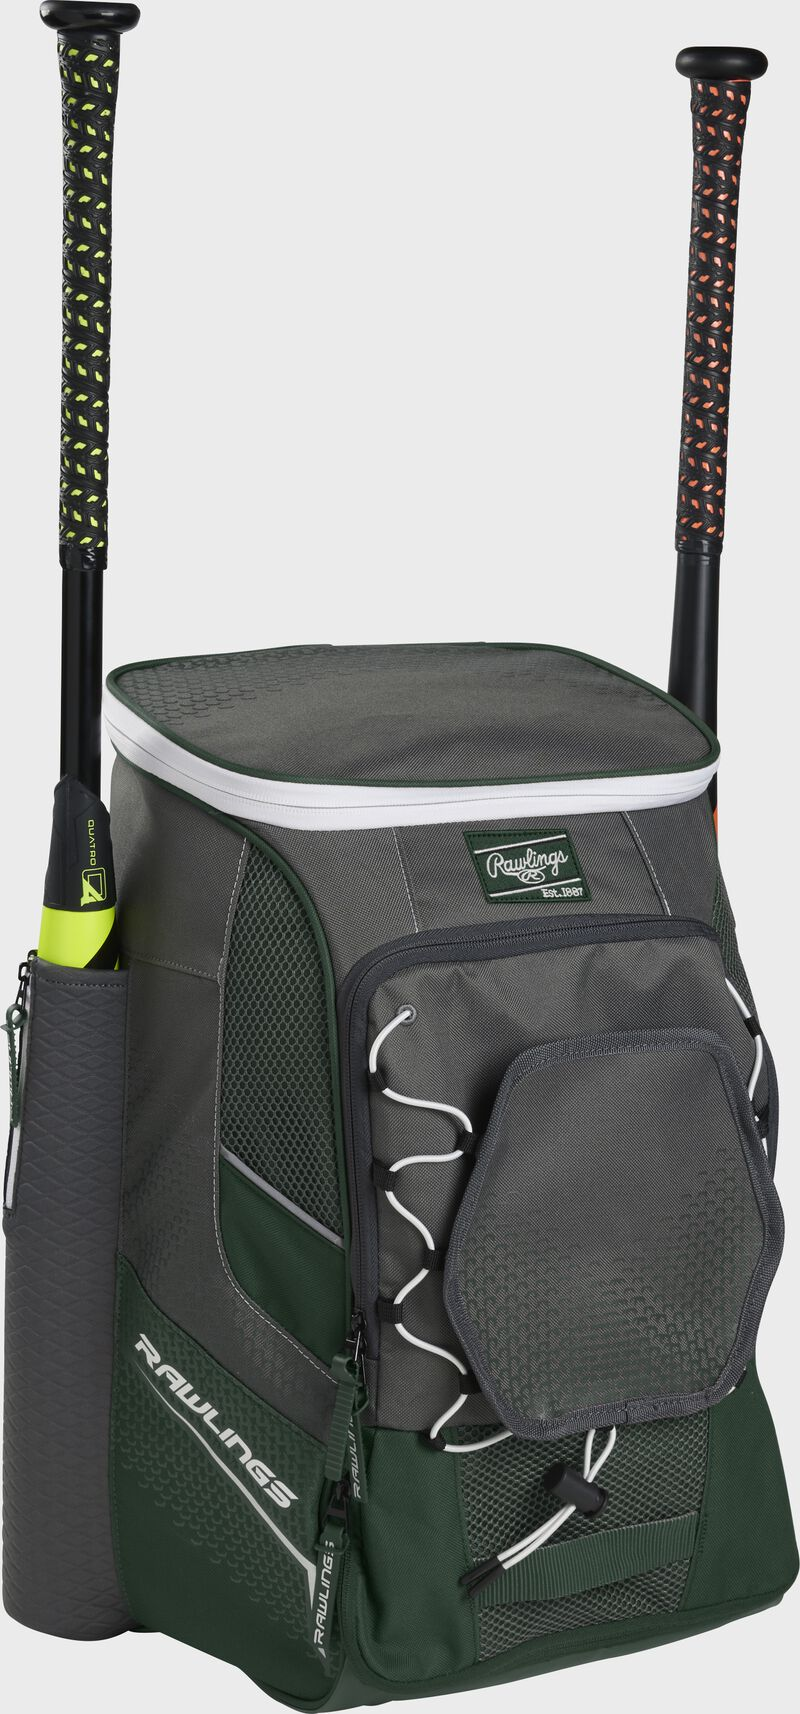 Front left angle of a dark green Rawlings Impulse baseball gear backpack with two bats - SKU: IMPLSE-DG